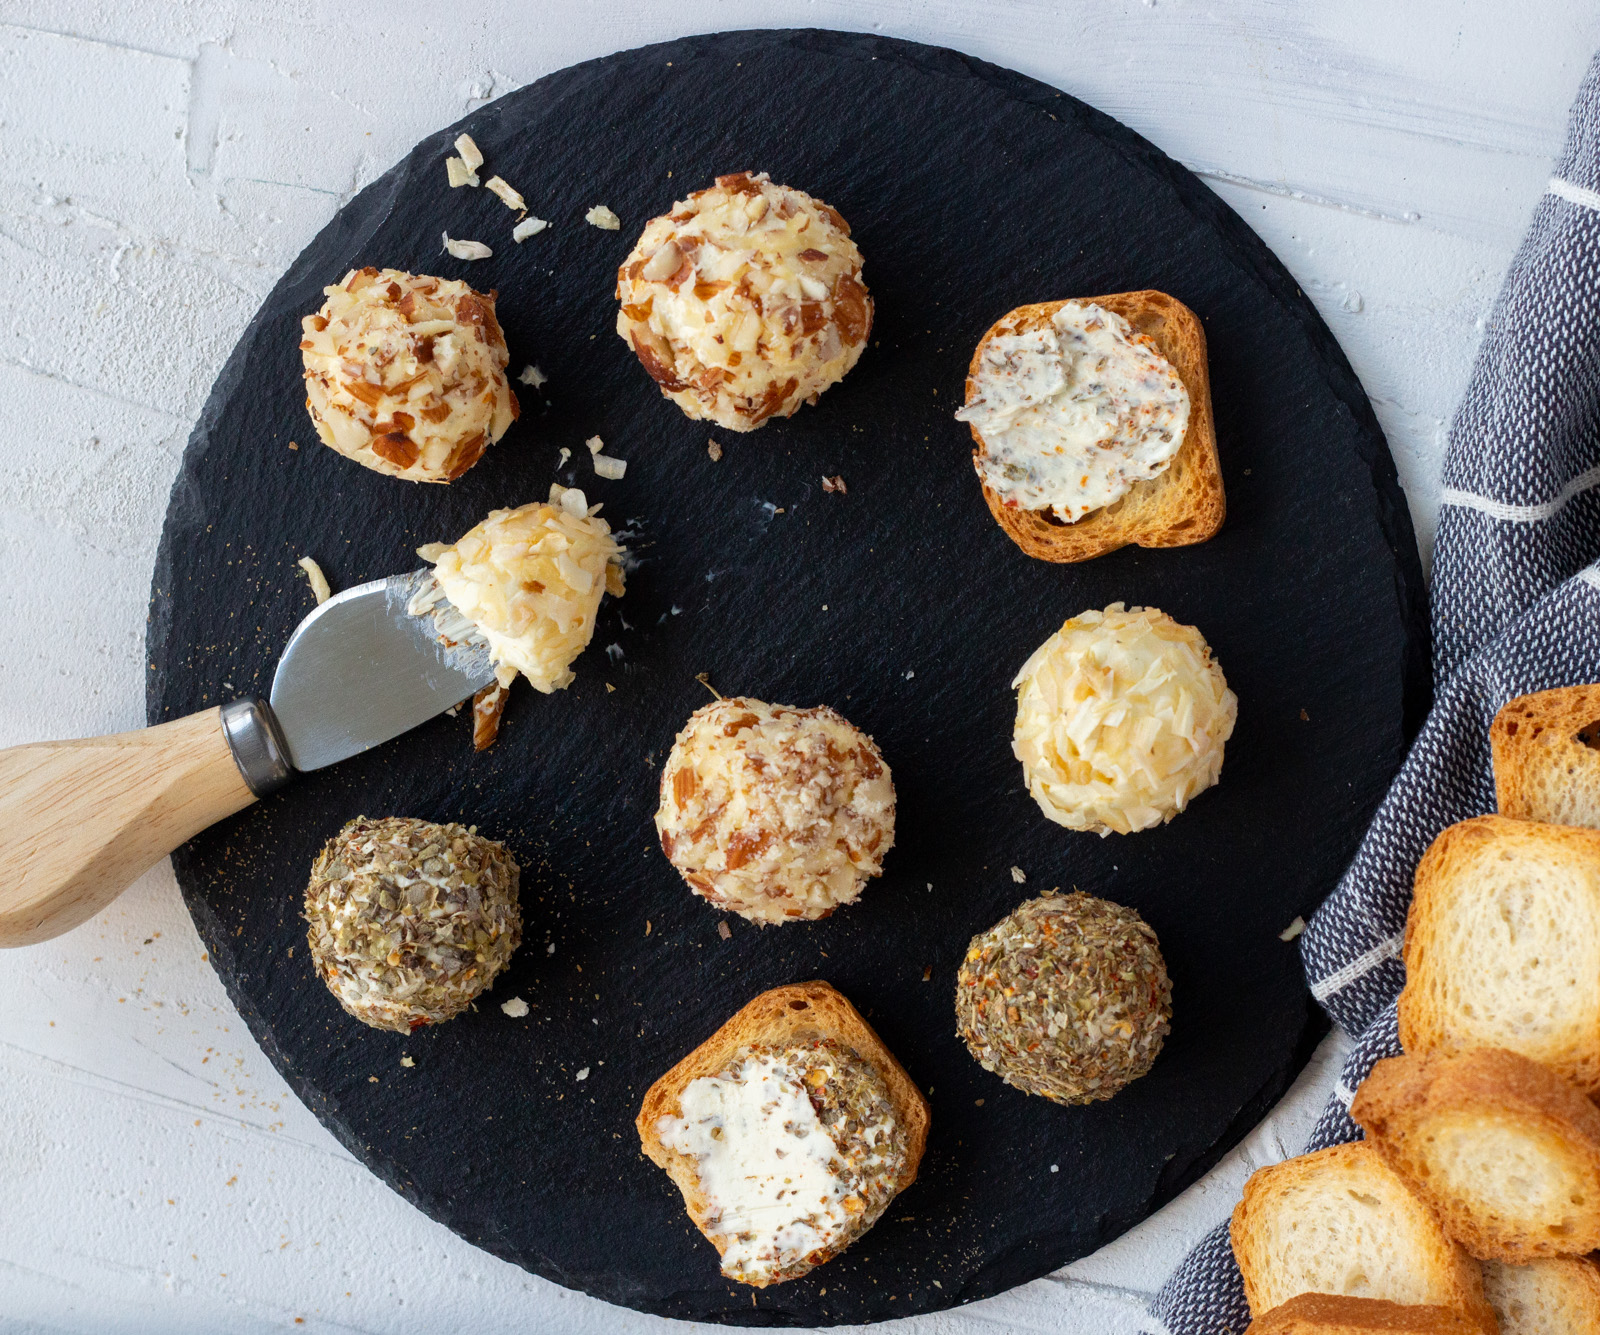 Assorted mini cheese balls set on a black slate platter. There are a 6 mini cheese balls coated with herbs, almonds and onion flakes. There are also mini toasts with cream cheese spread on them along with a cheese knife.